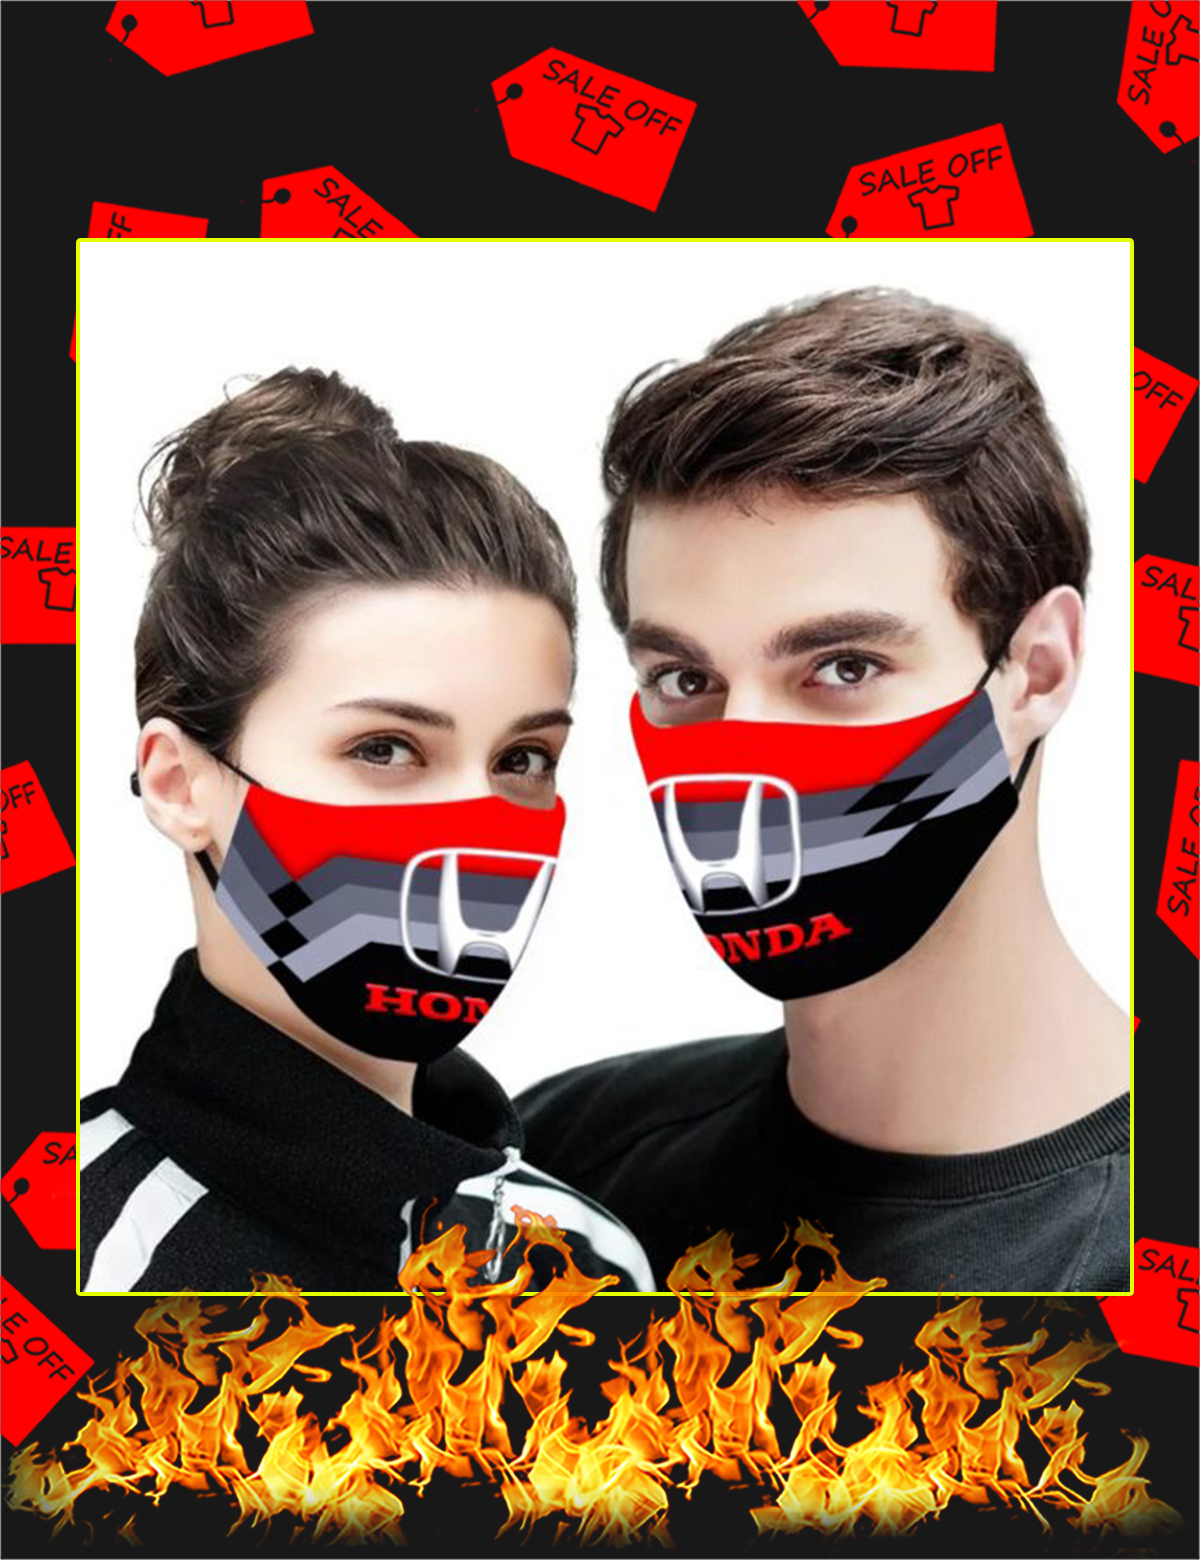 Honda face mask - Picture 1